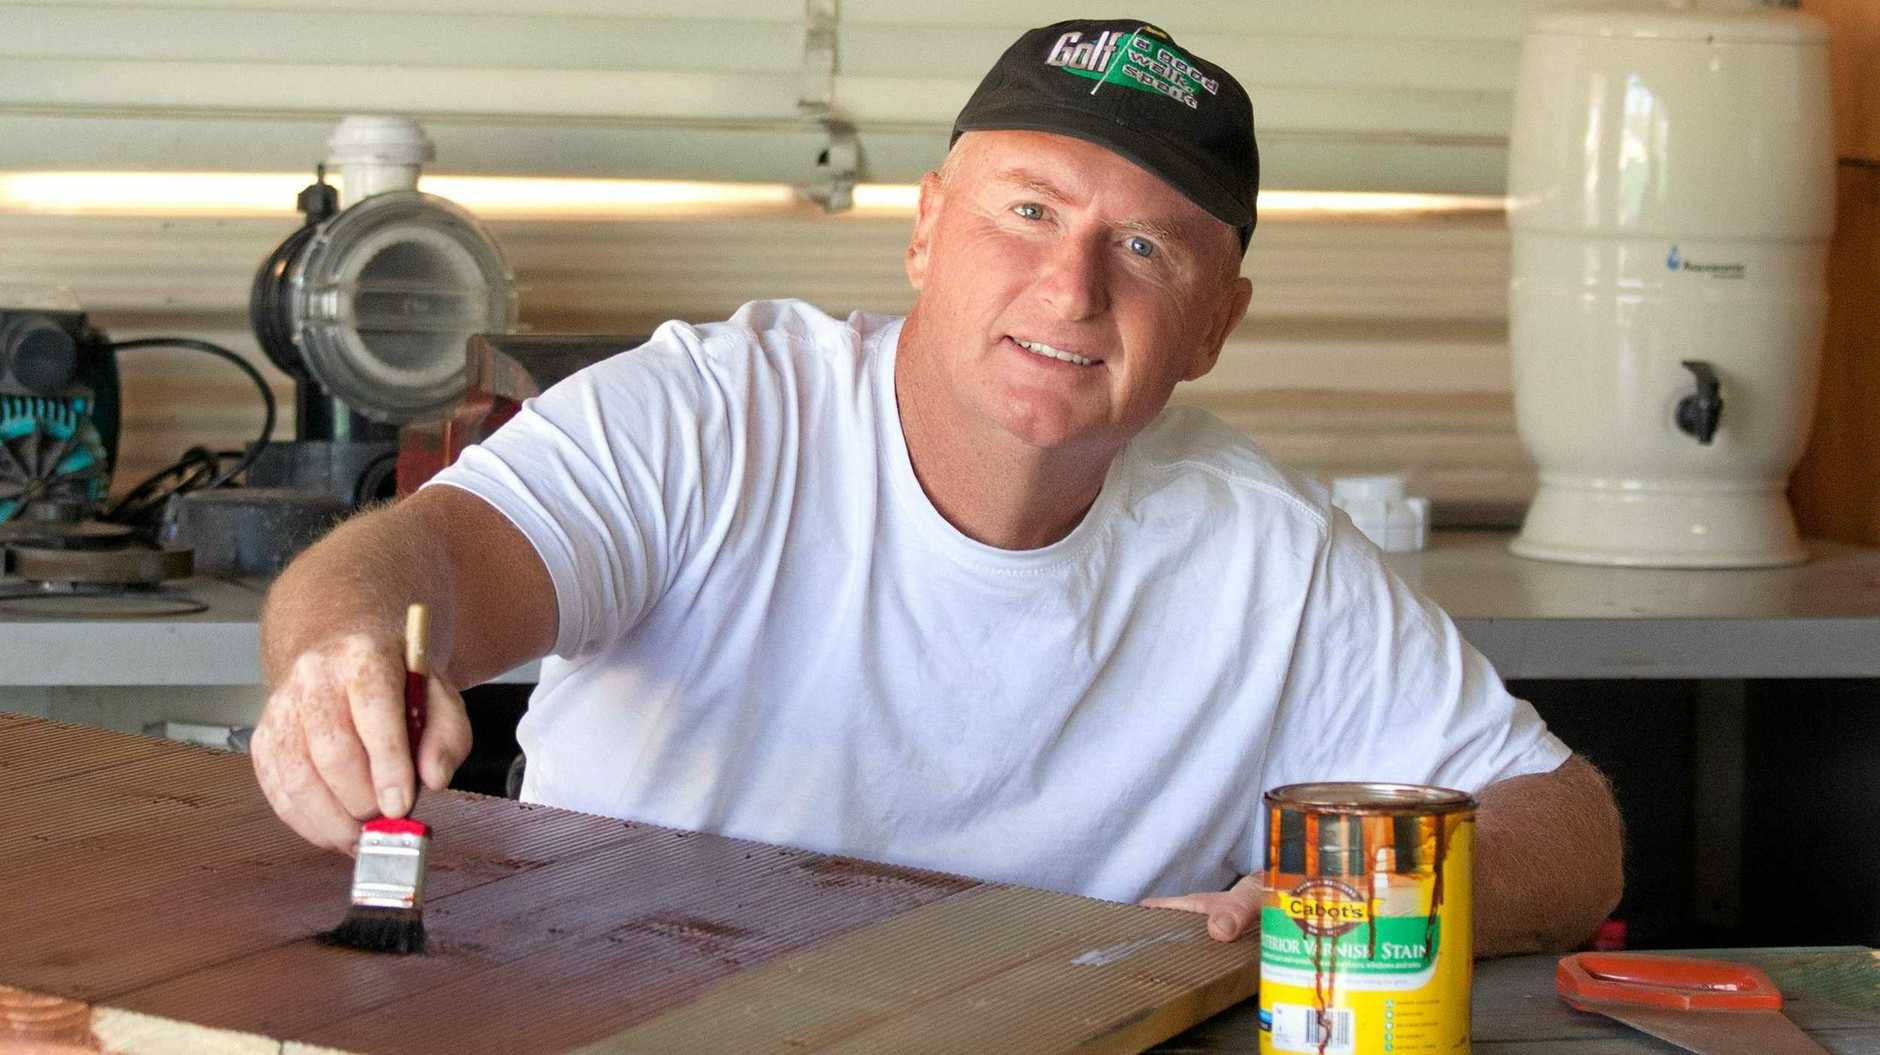 HELPING HAND: Clive Byers is waiting on the phone call that could change his life.